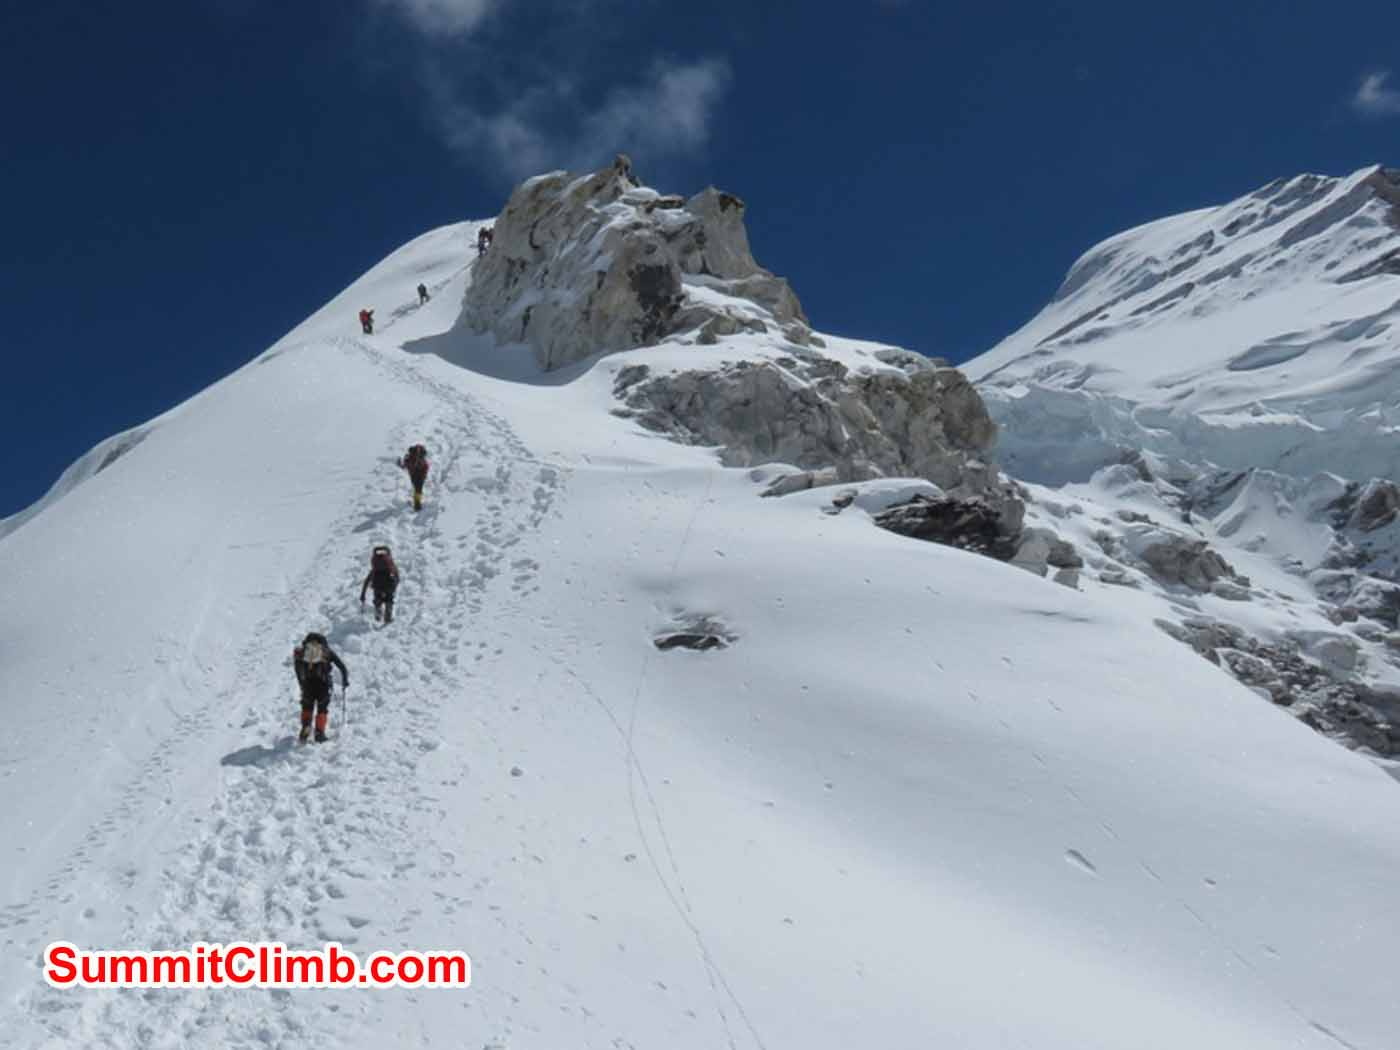 Steve Janke and Troy Bacon climbing to Camp 1.5 by Kaley Erickson